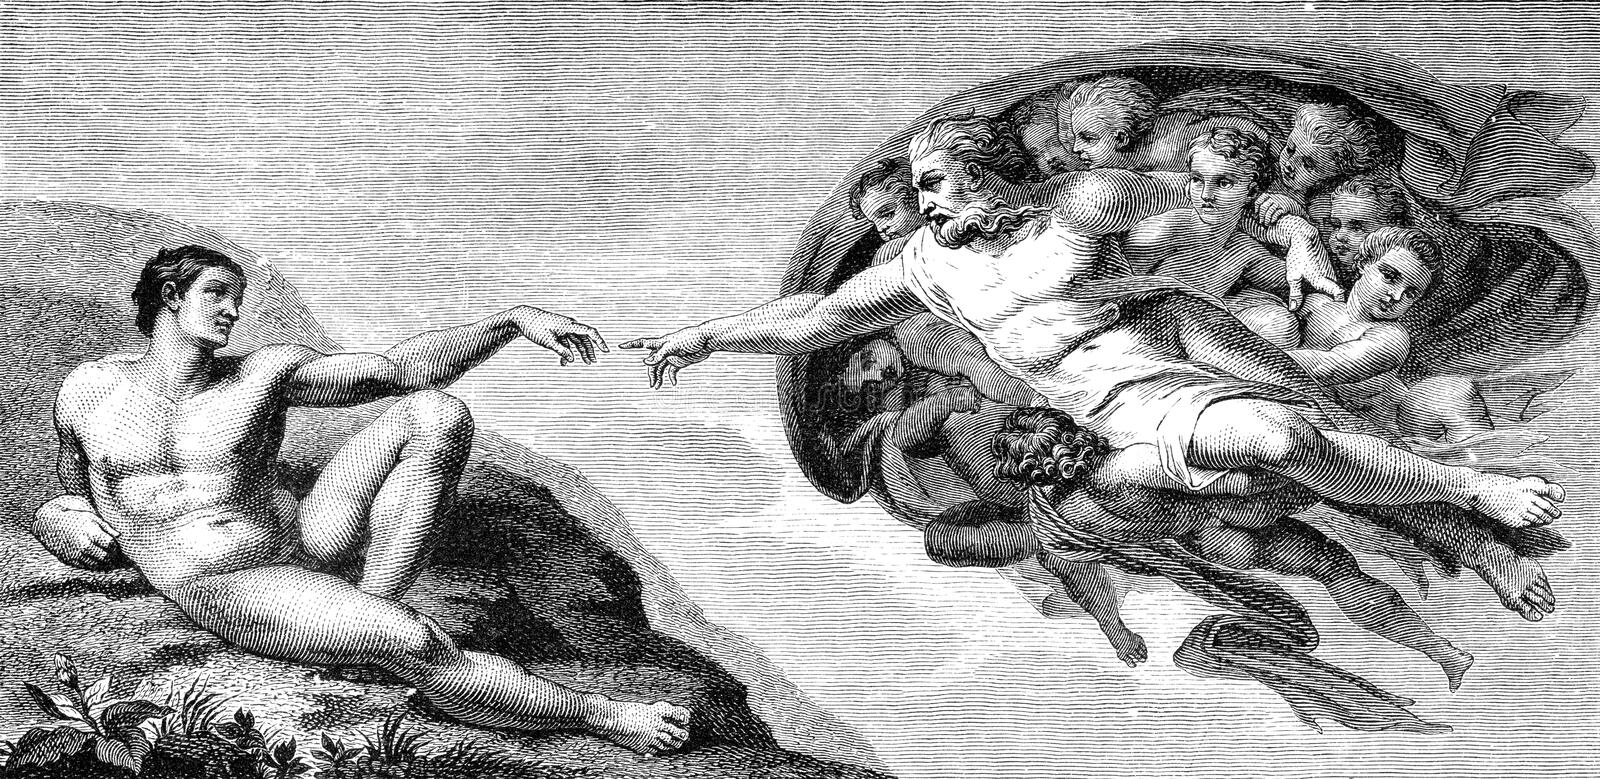 Michelangelo's The Creation of Man from the ceiling of the Sistine Chapel royalty free illustration